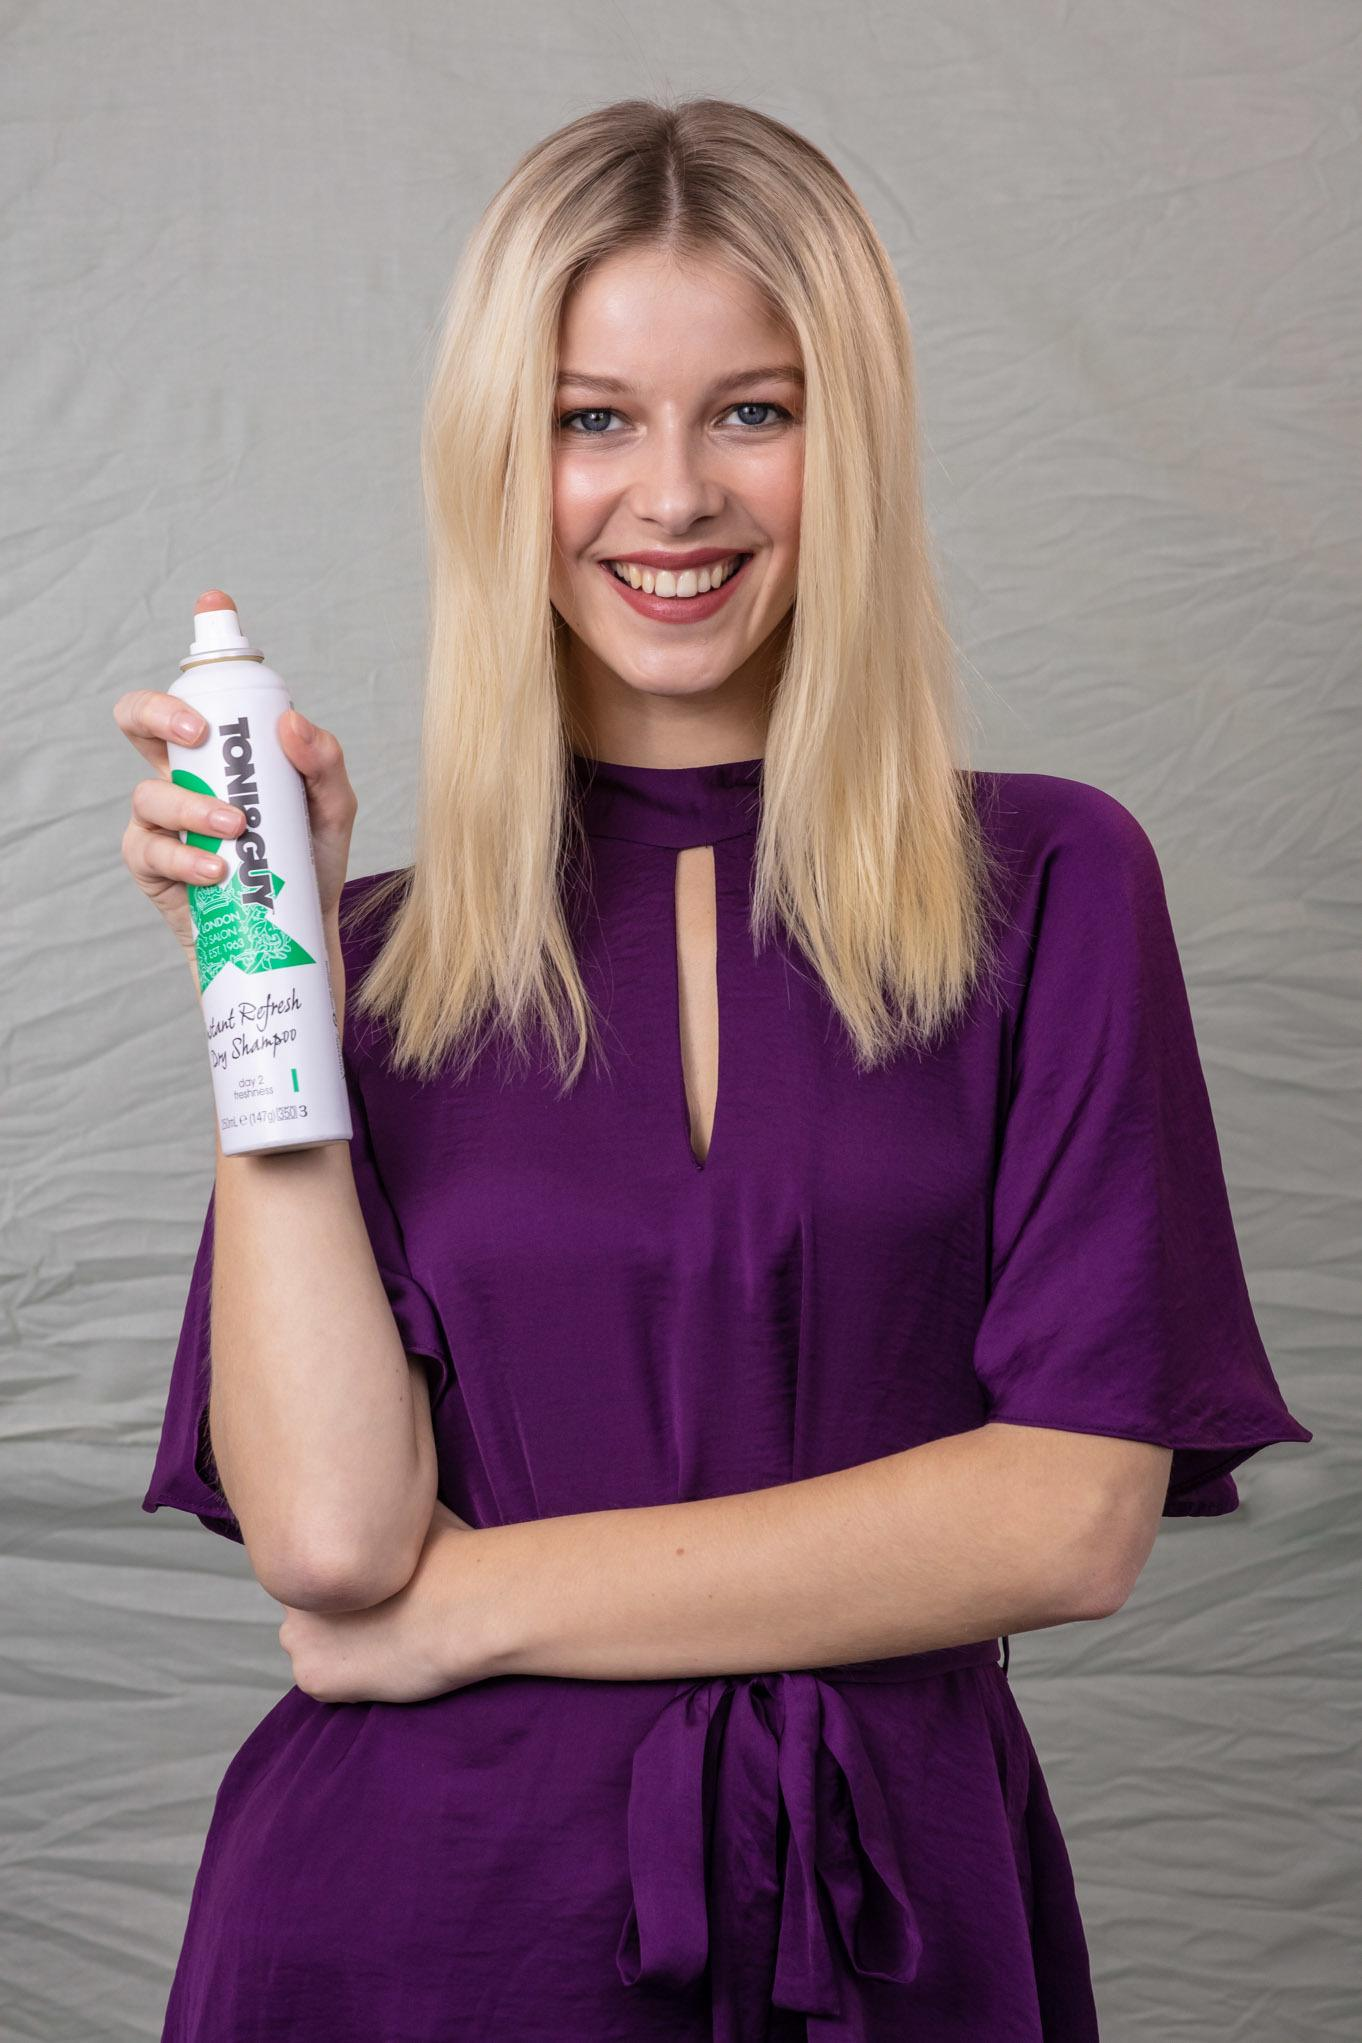 How to make hair look thicker: Blonde model with shoulder length hair, holding a can of dry shampoo, wearing a purple top